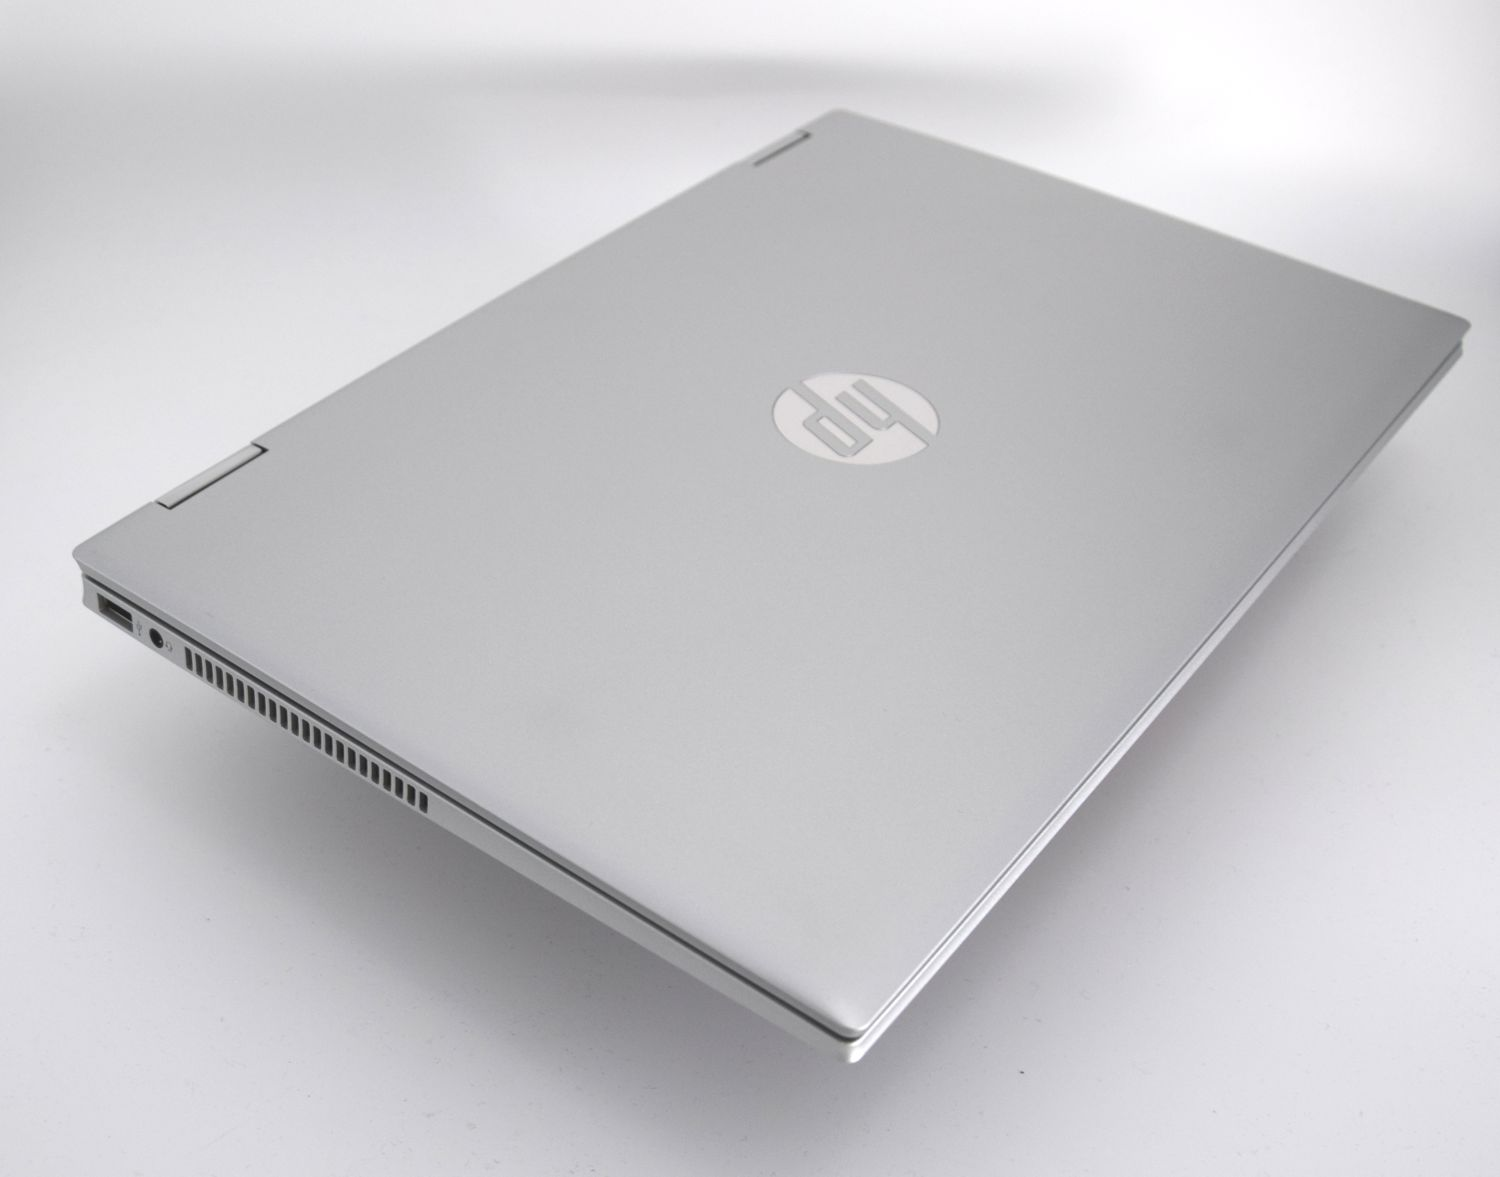 HP Pavilion x360 14s-dw1210ng 14 Zoll Convertible Touch 256 GB 8 GB RAM 250 SSD